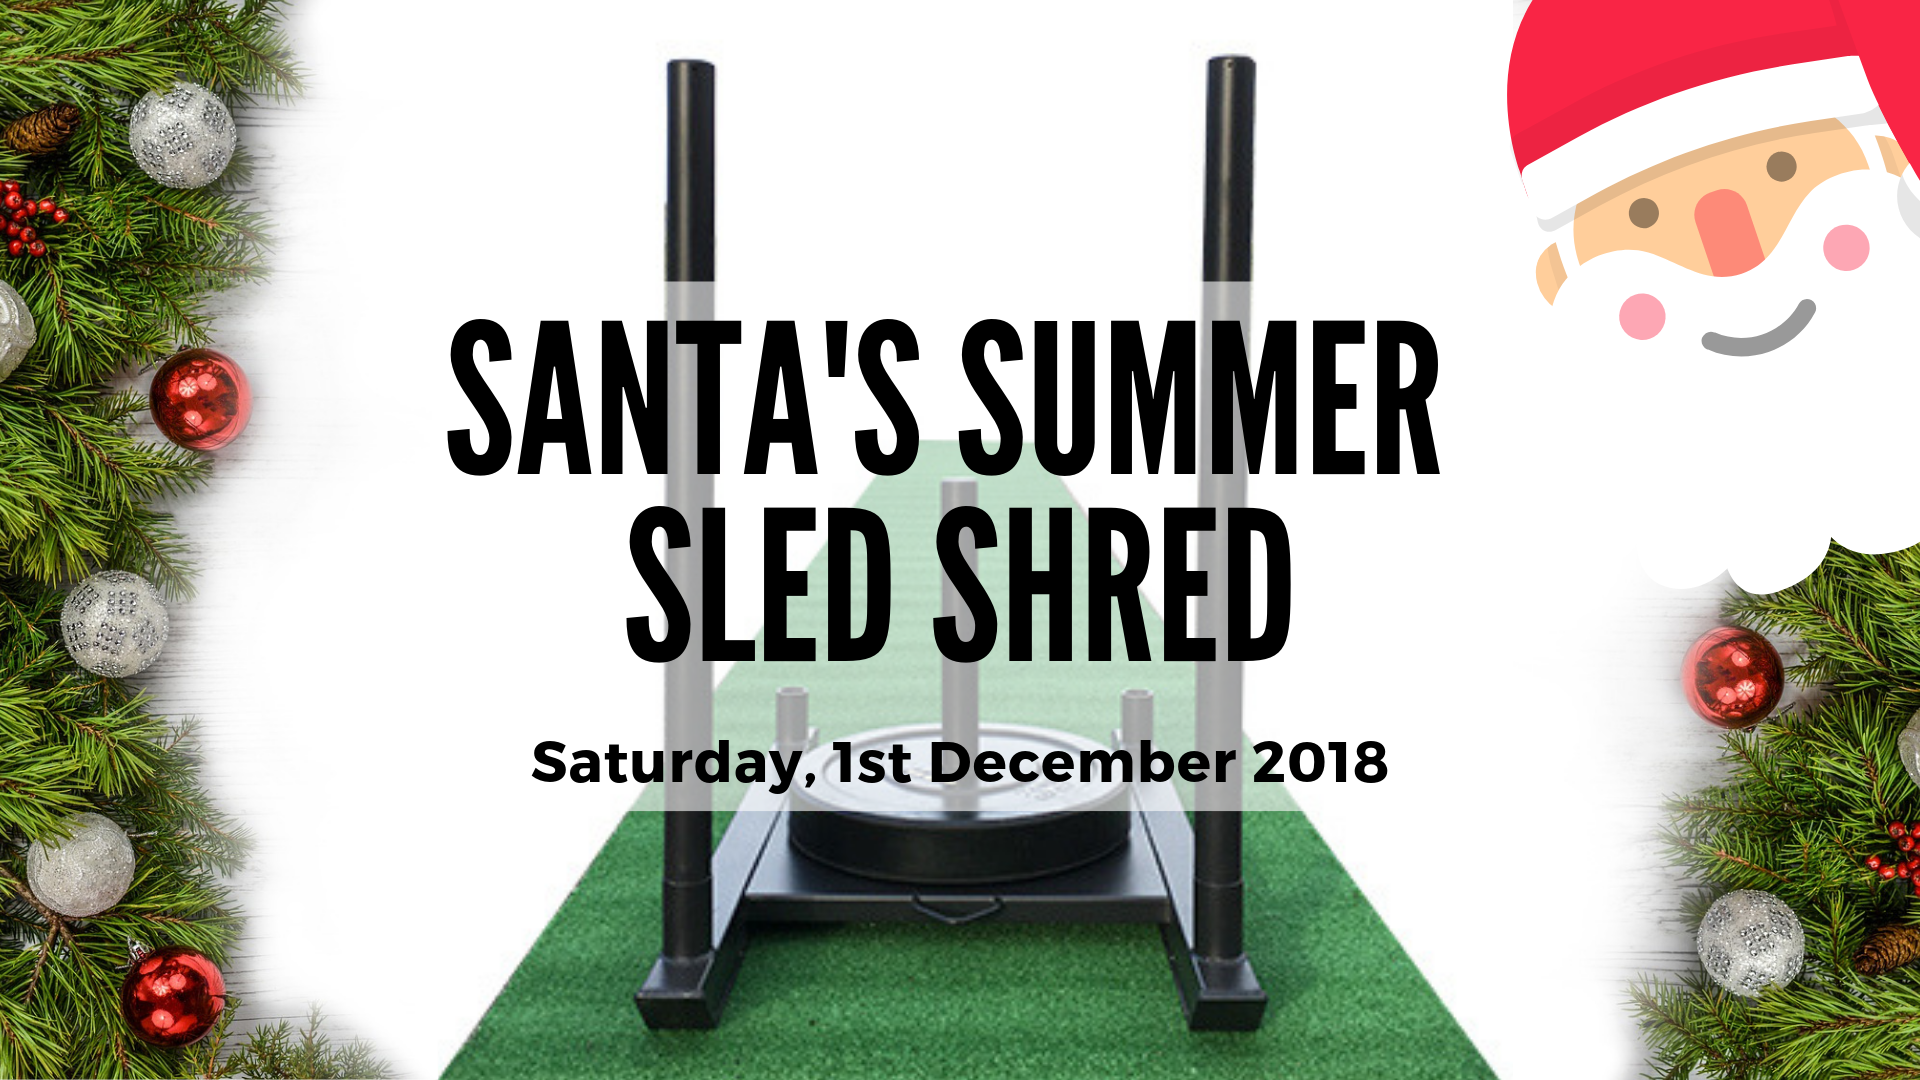 SANTA SUMMER SLED SHRED (1)